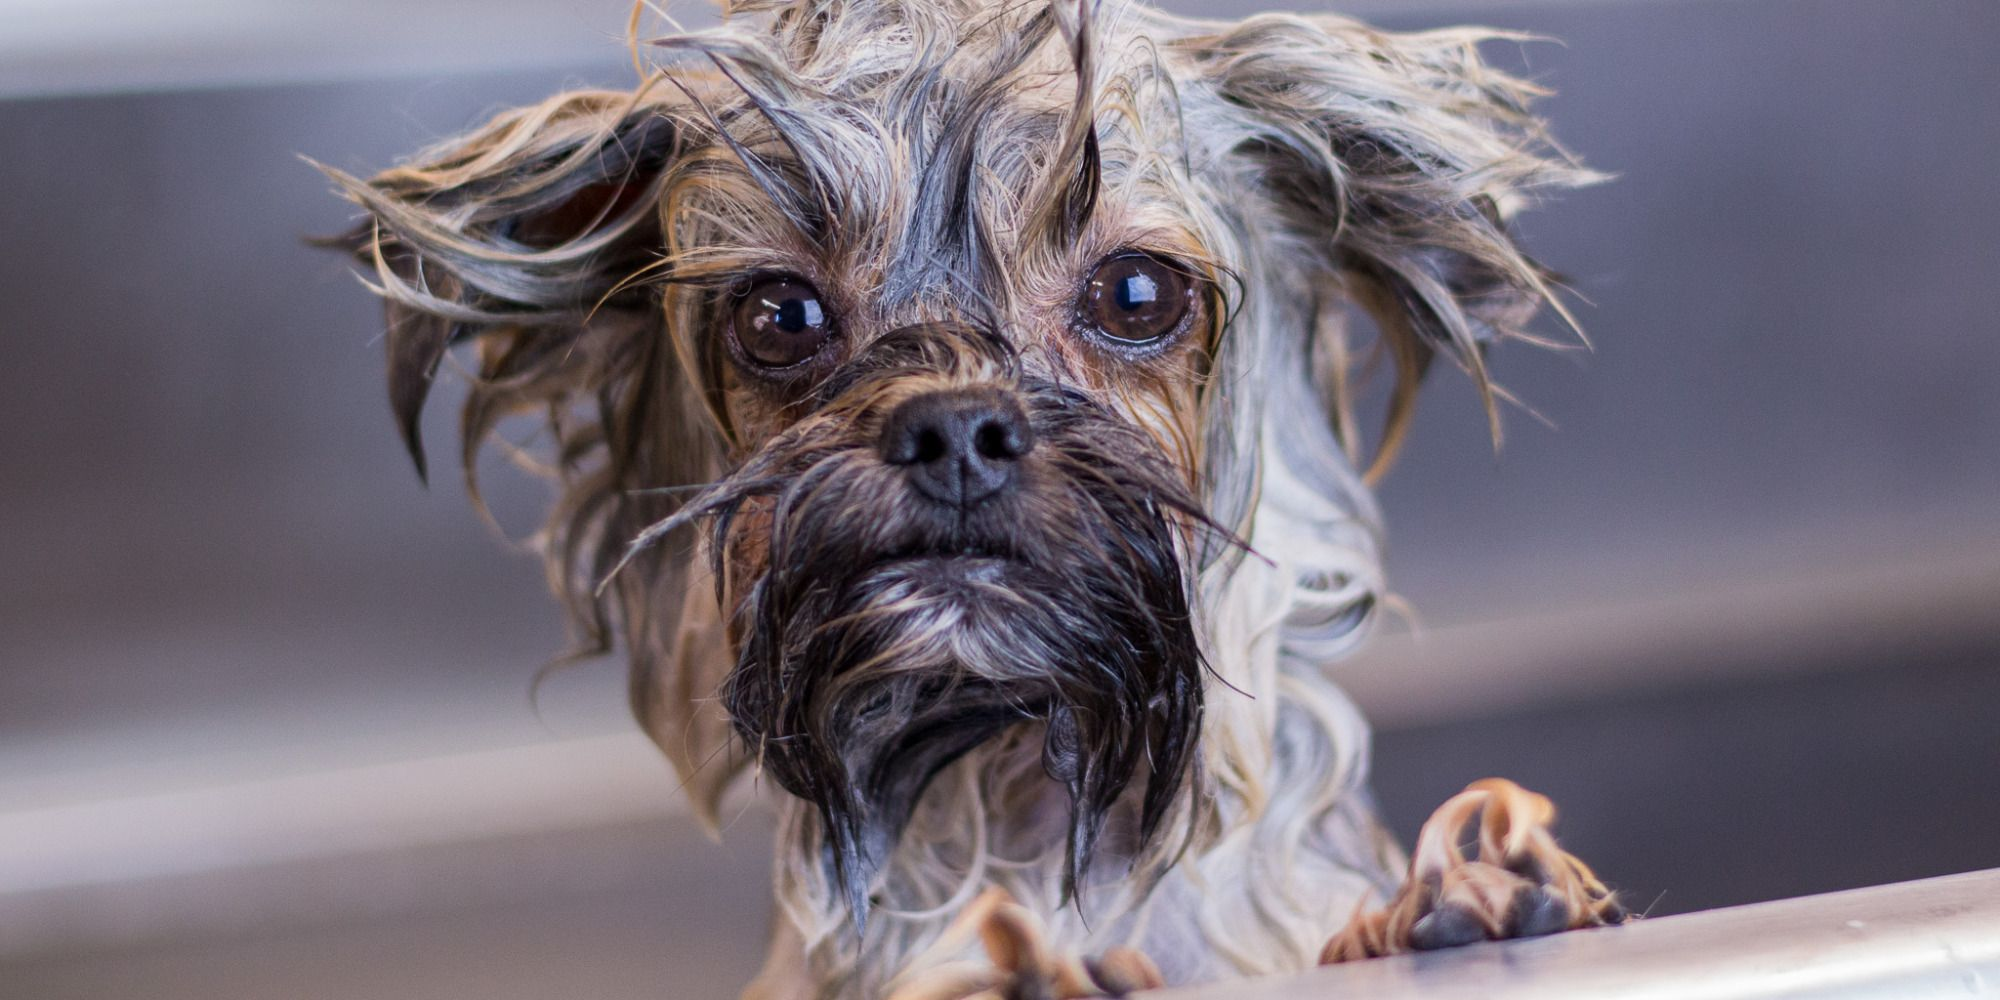 Before and After: One Groomer's Wet Dog Photography